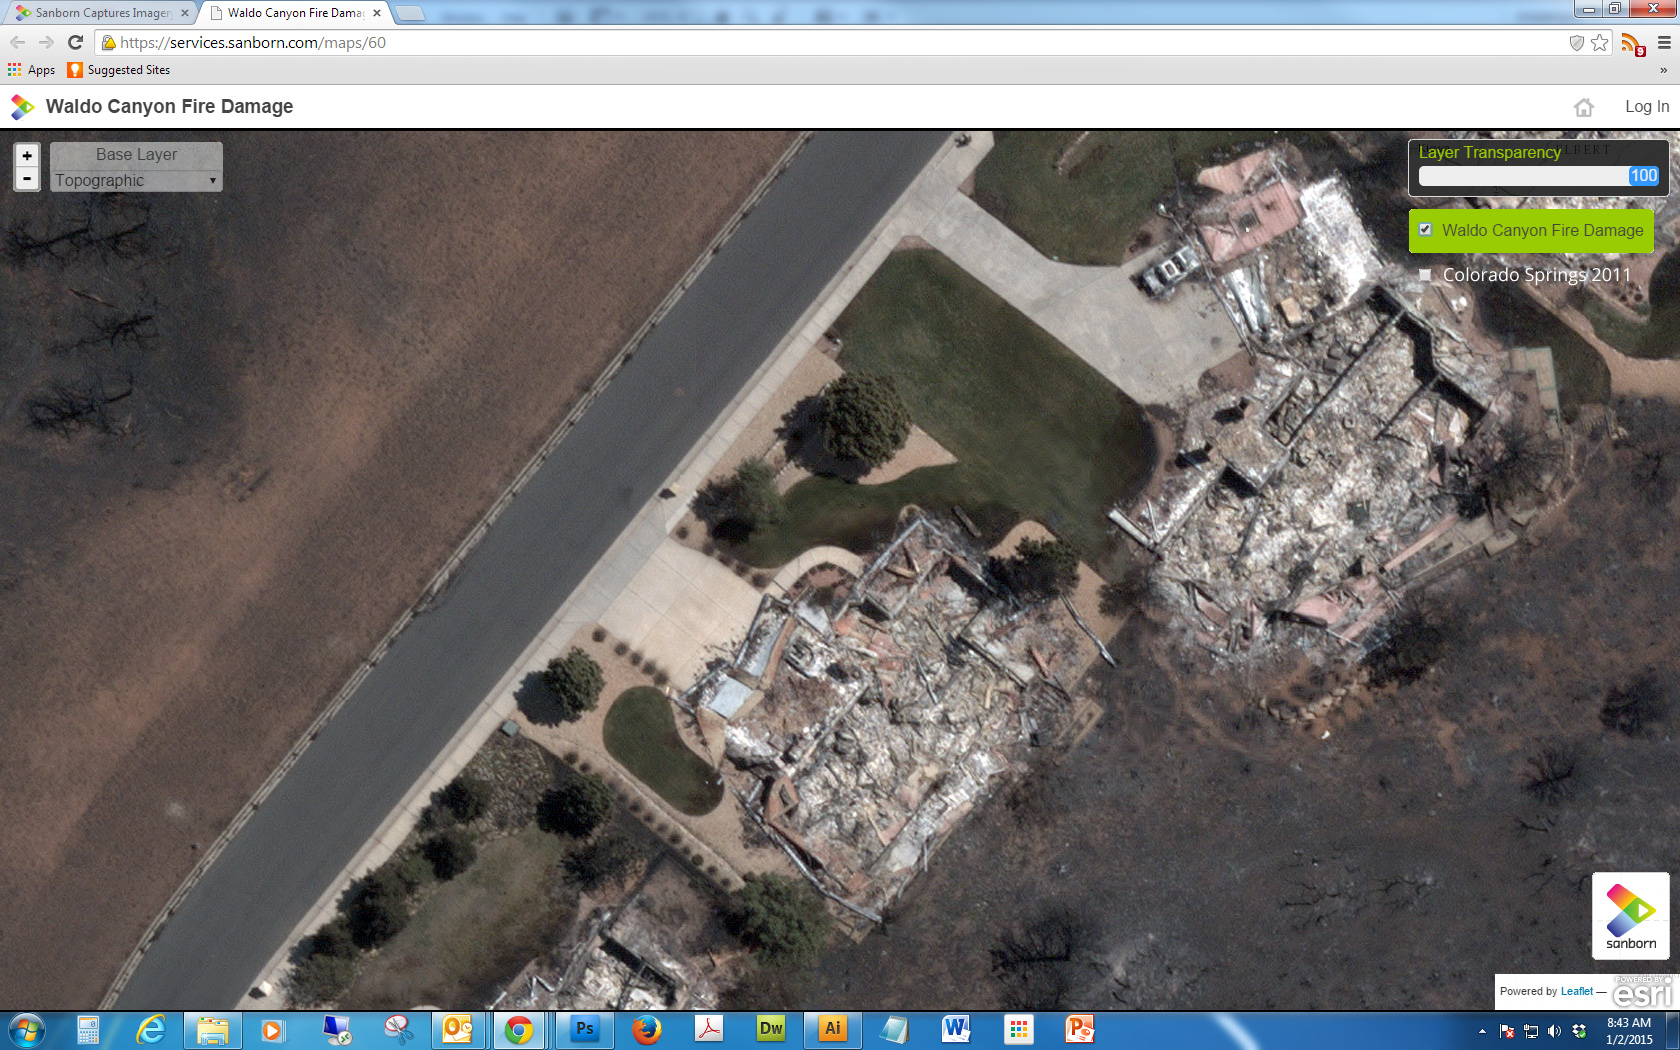 Image Showing Homes Burned By the Waldo Canyon Fire